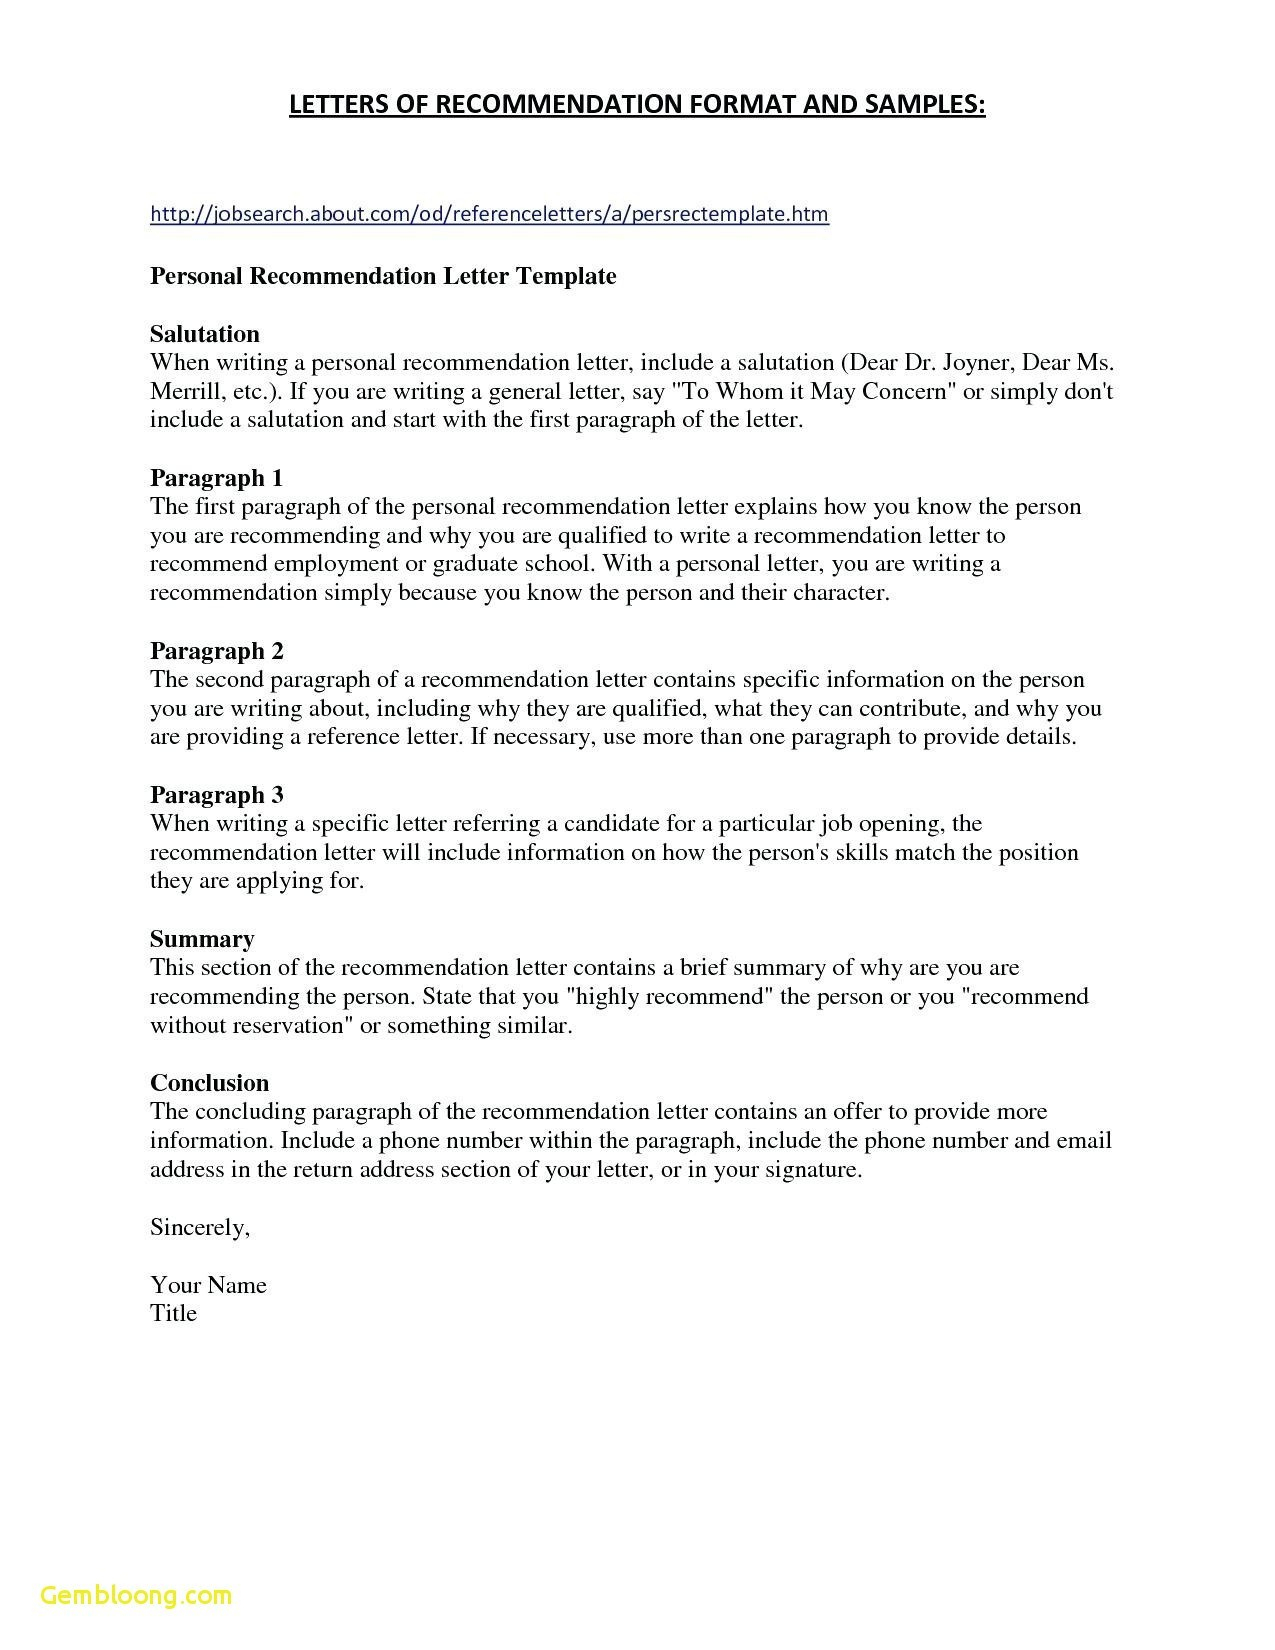 writing a reference letter template example-job reference letter template job re mendation letter template best refrence format job reference letter 7o 5-b